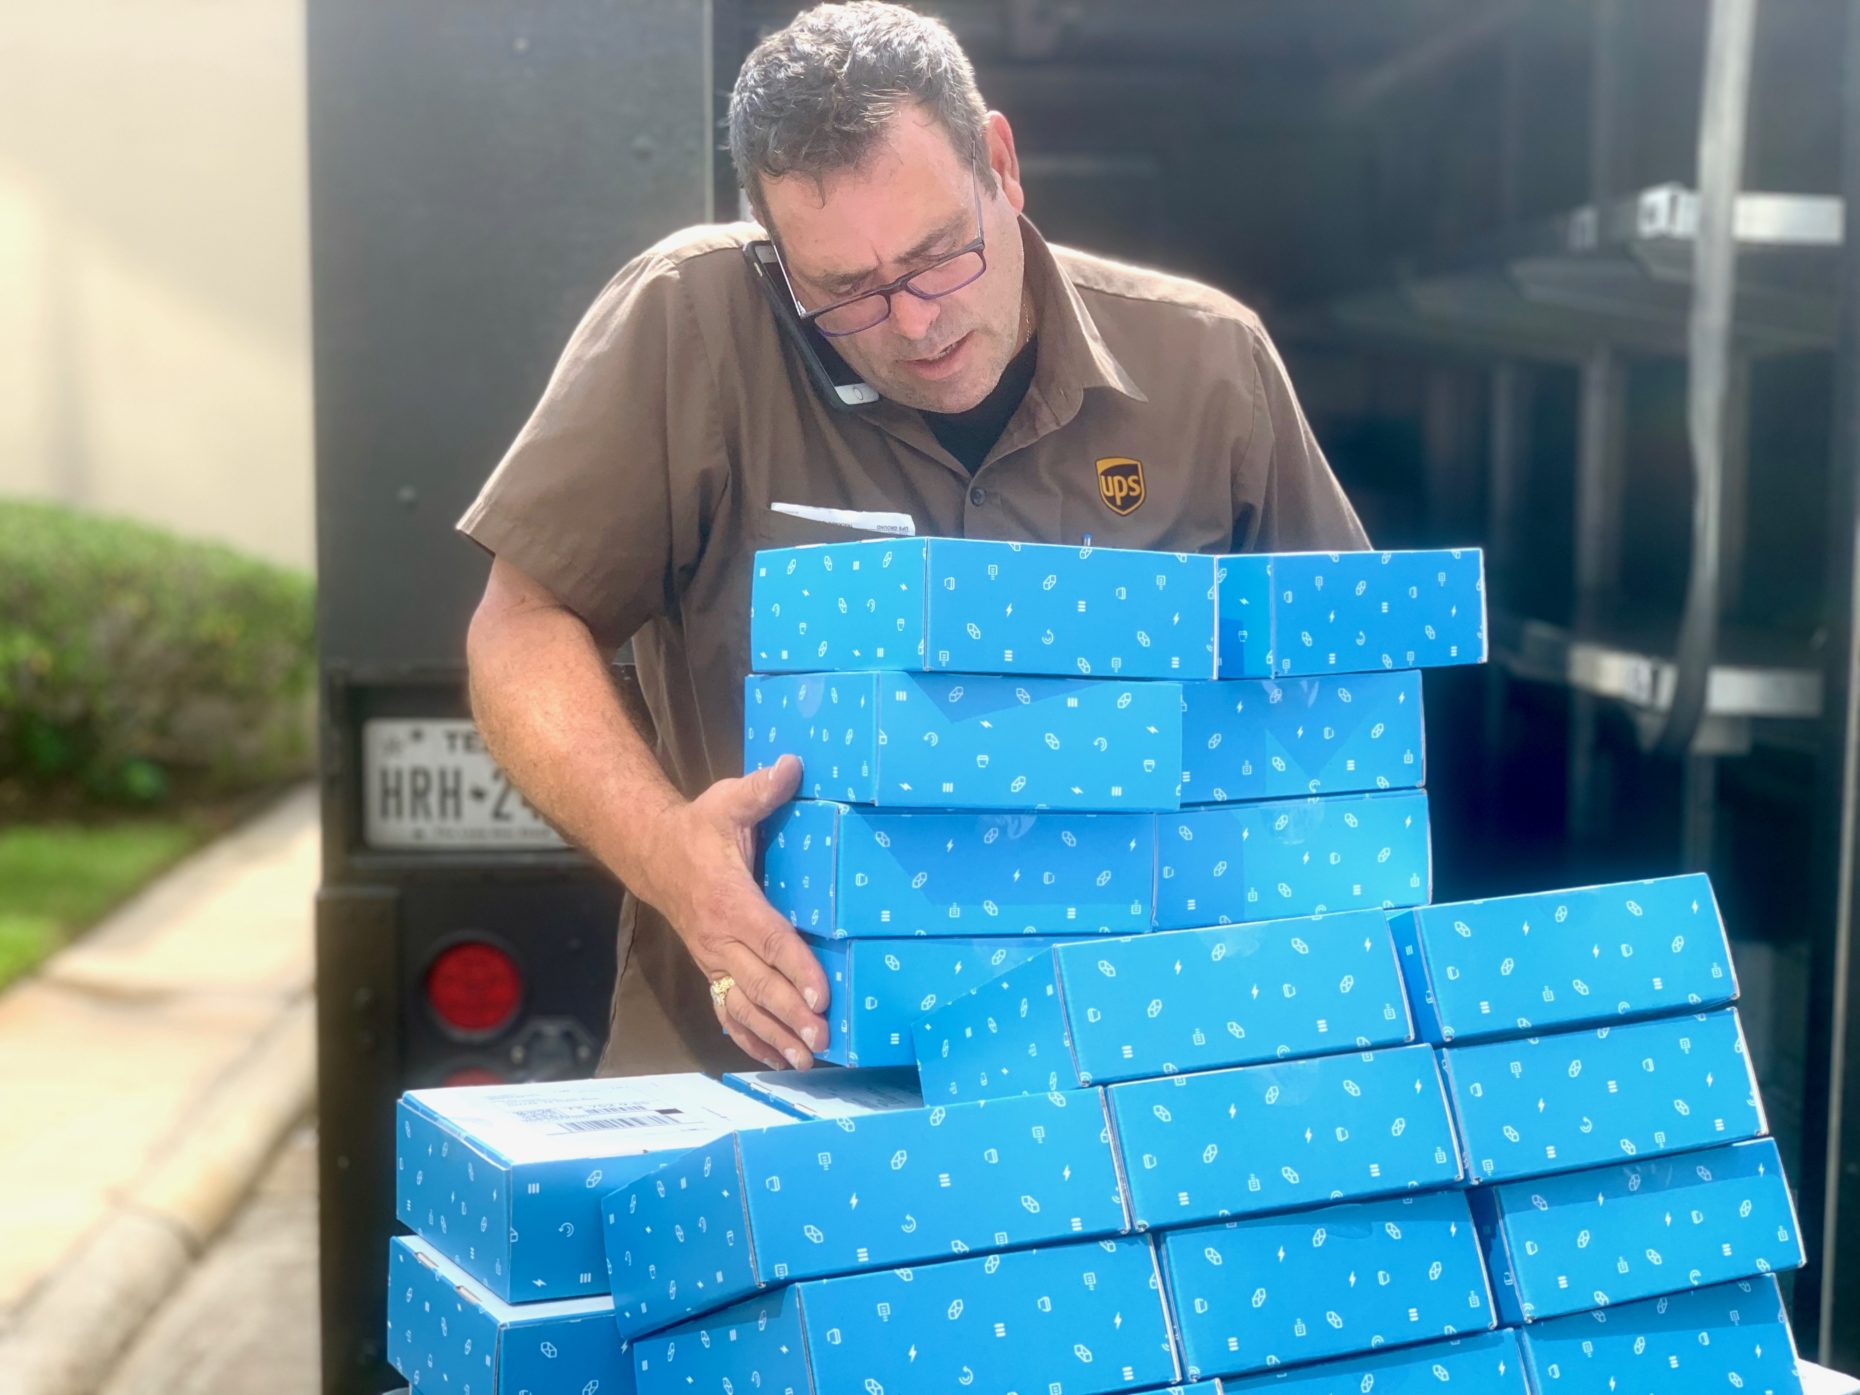 UPS guy picking up a lot of blue boxes.